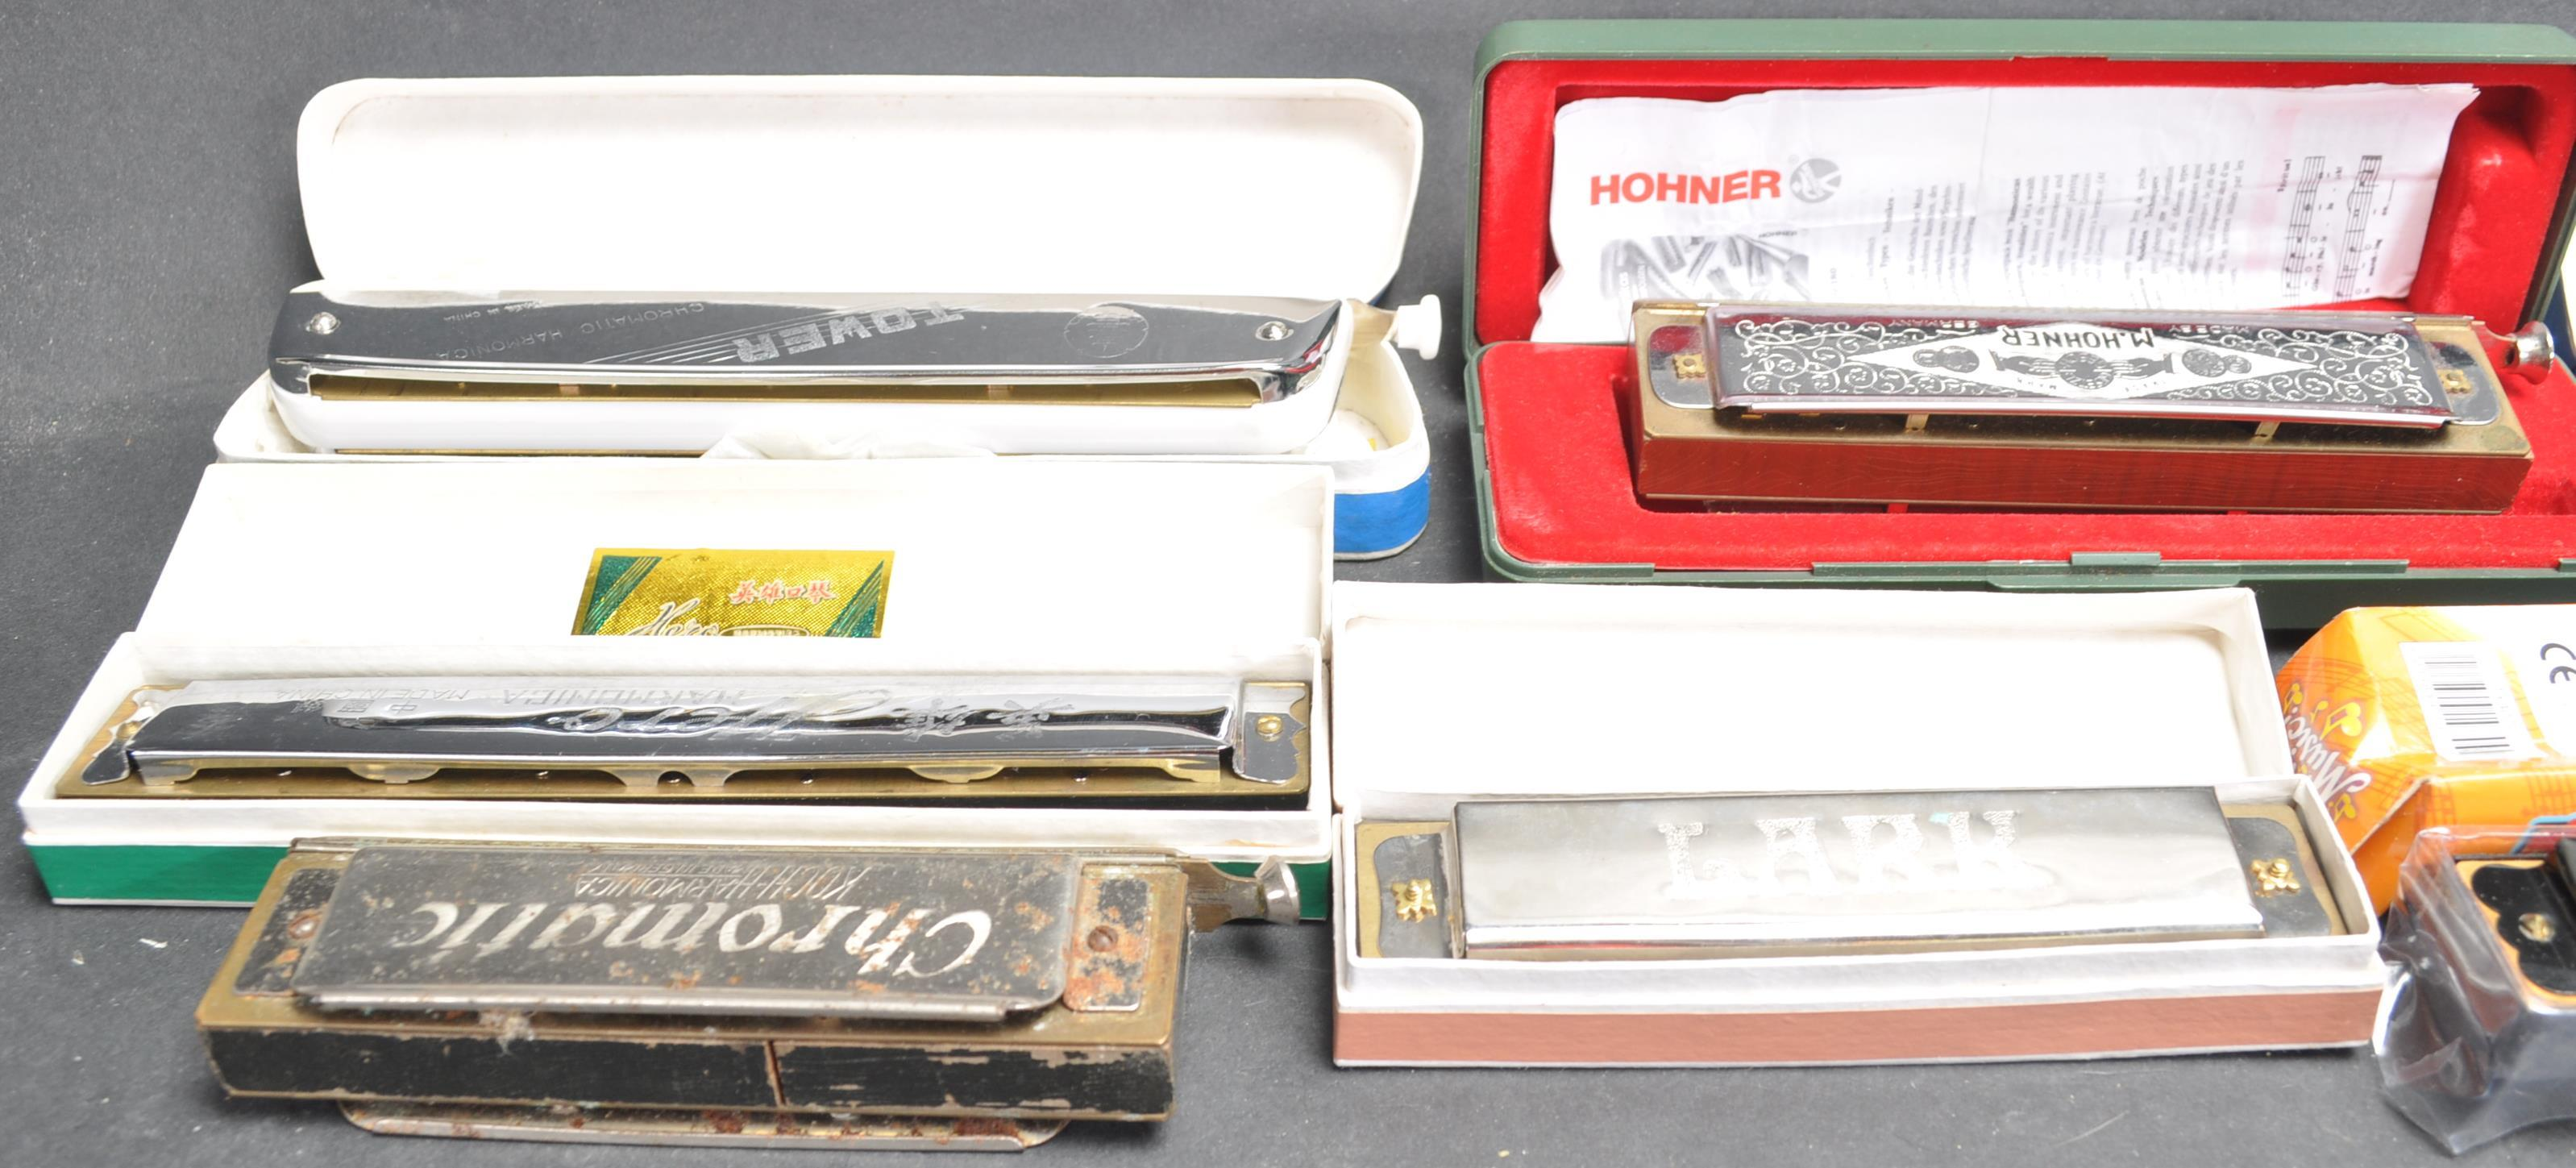 COLLECTION OF VINTAGE MOUTH ORGANS / HARMONICAS - Image 6 of 7